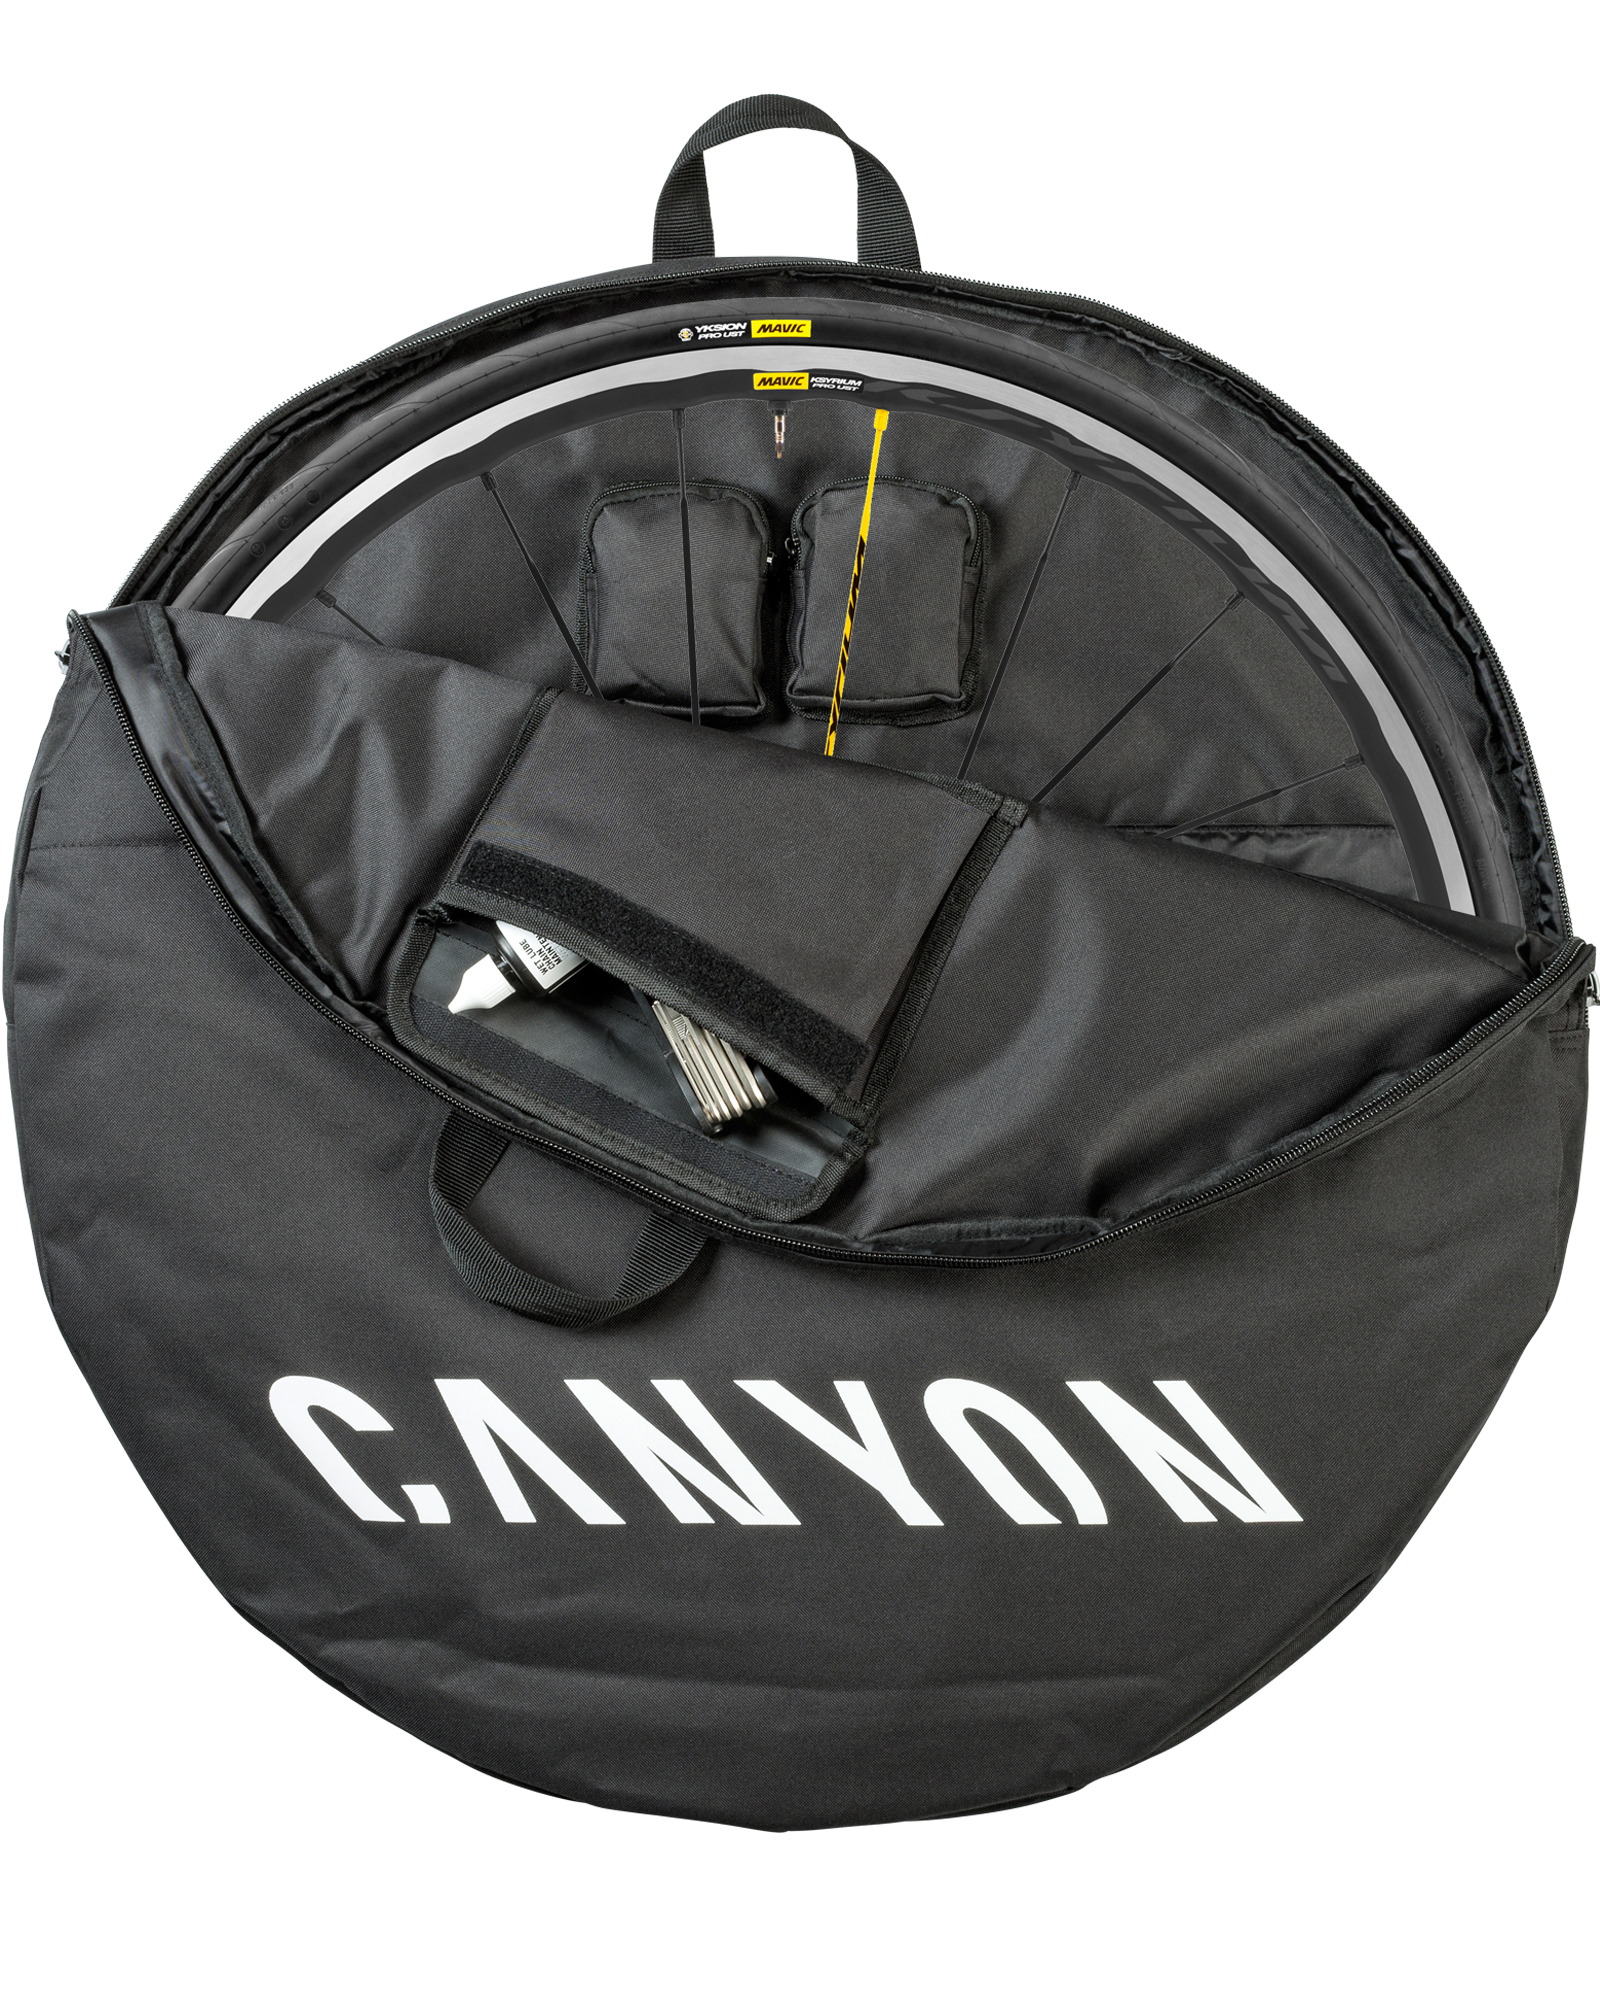 Canyon Road Wheel Guard | Hjulsæt